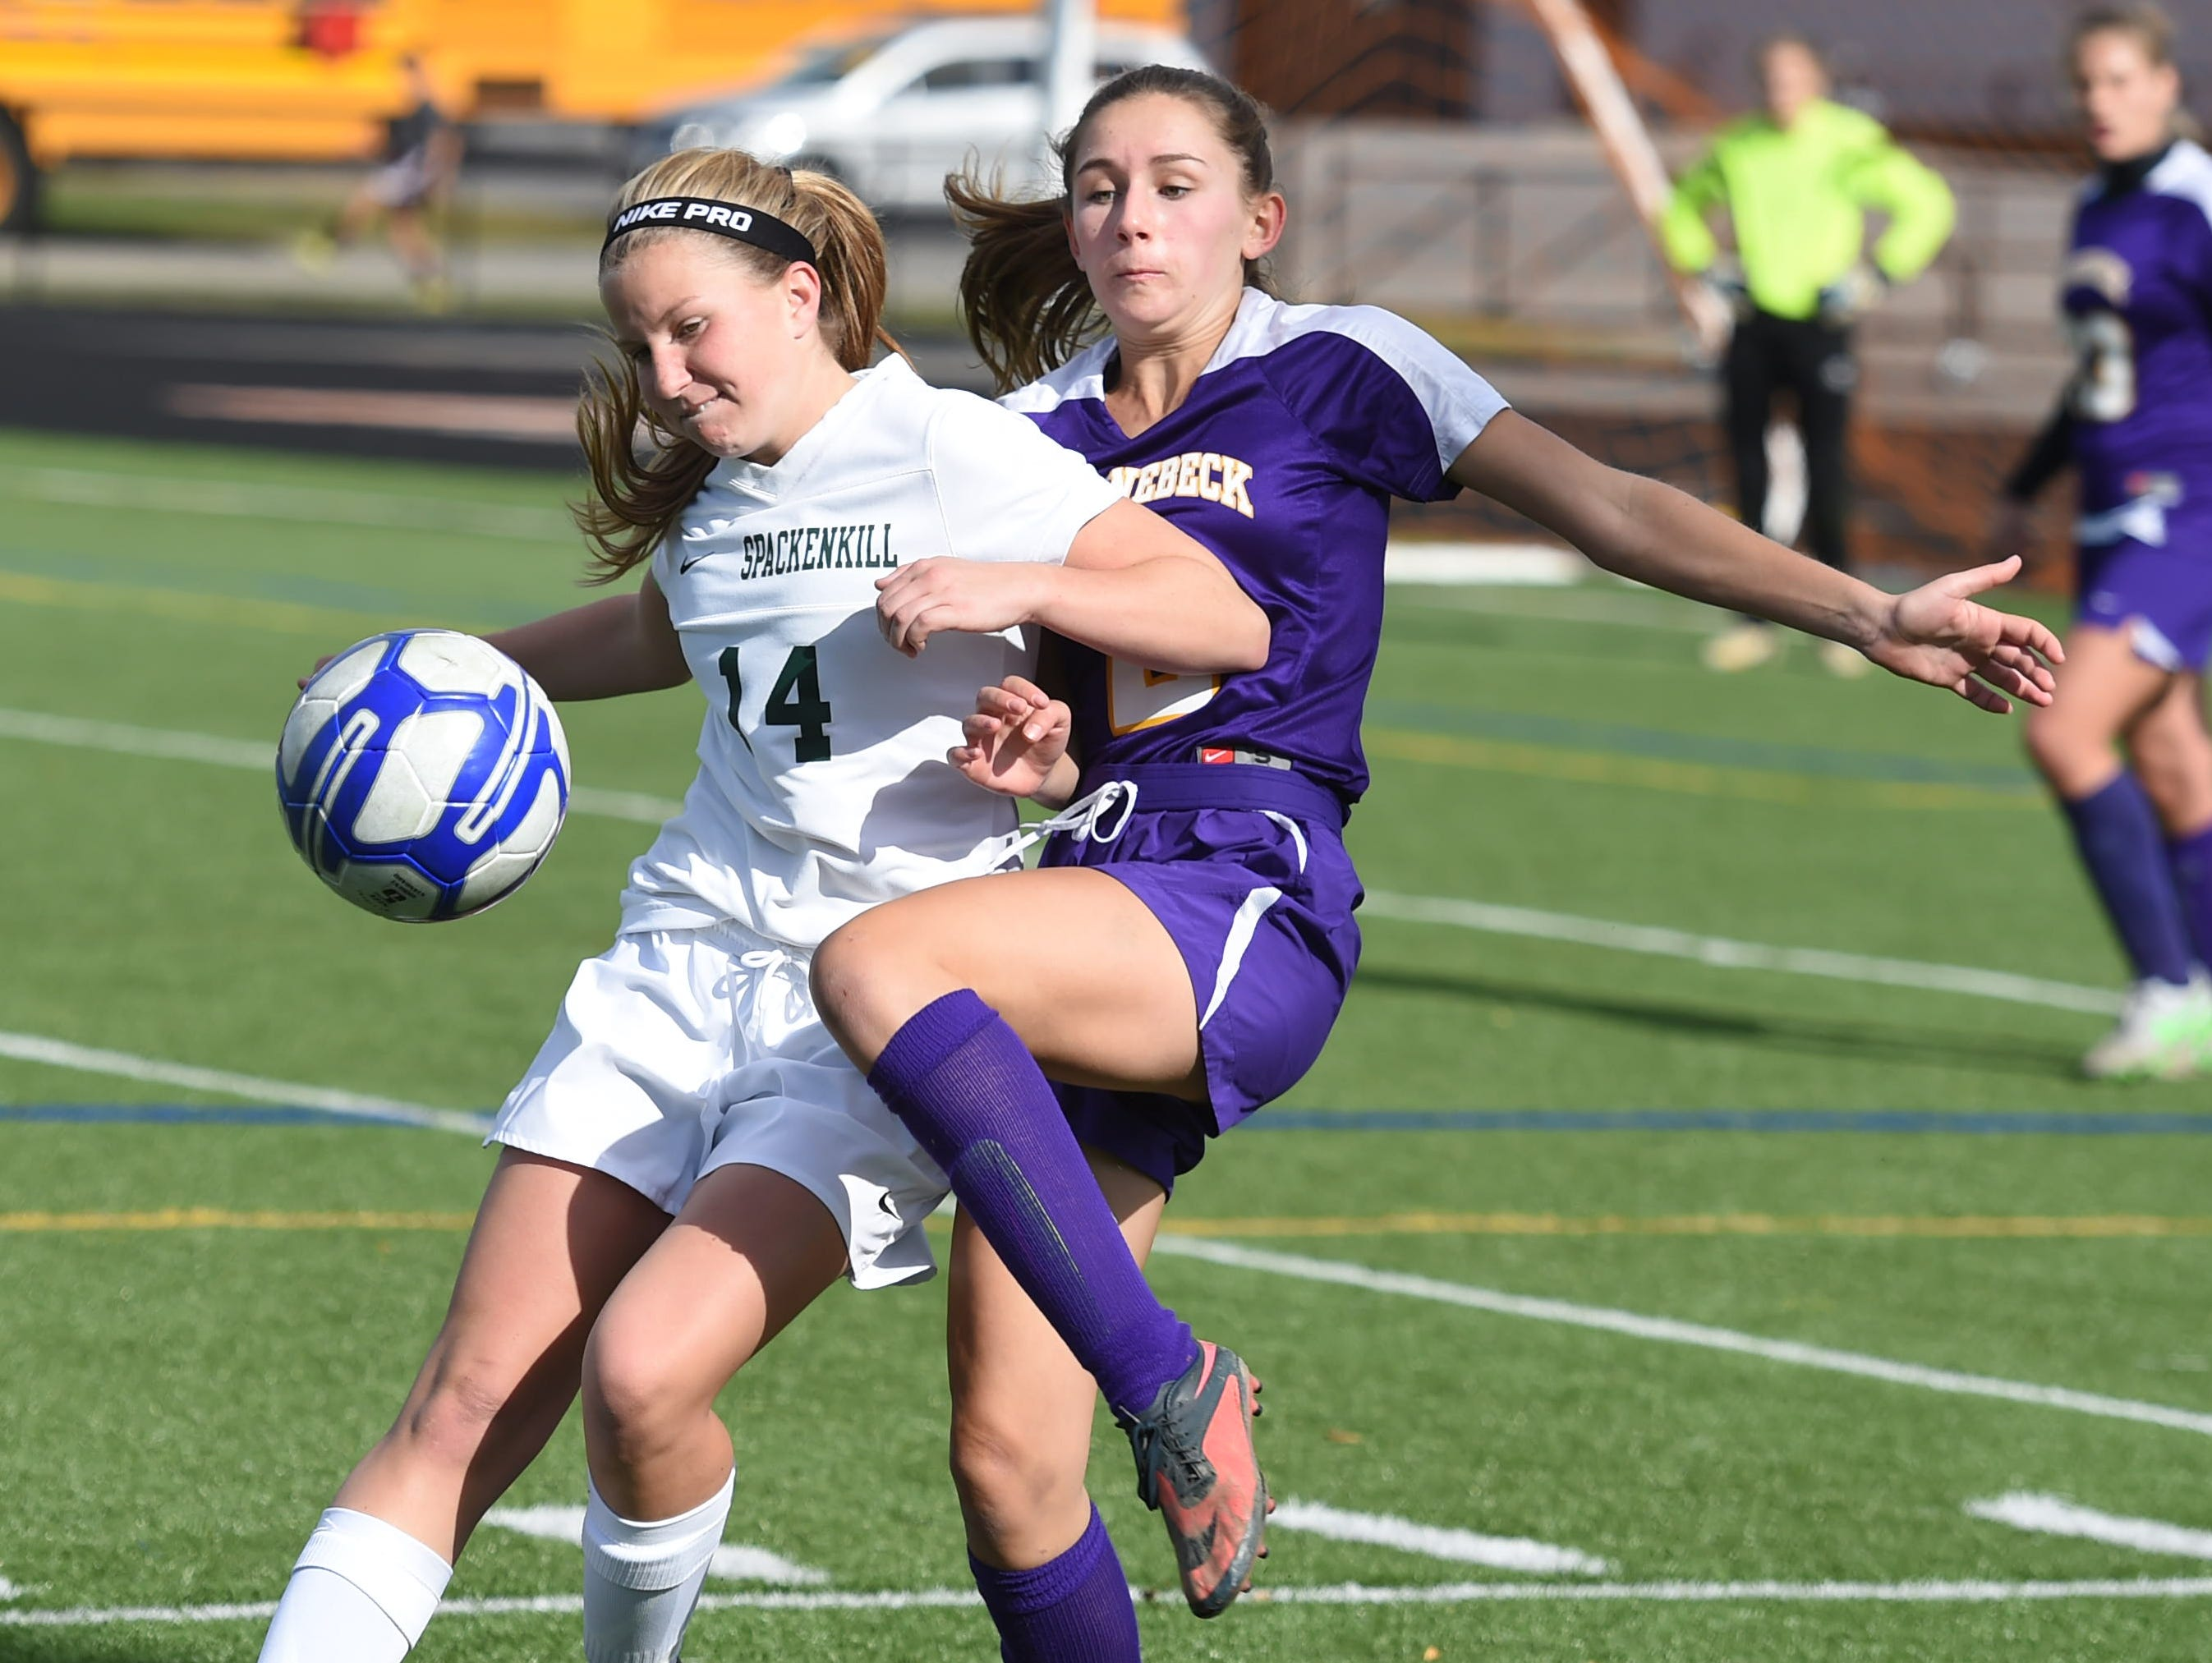 Spackenkill's Katherine Lillis traps the ball away from Rhinebeck's Olivia Lortie during the Section 9 Class C final held in Marlboro on Saturday.